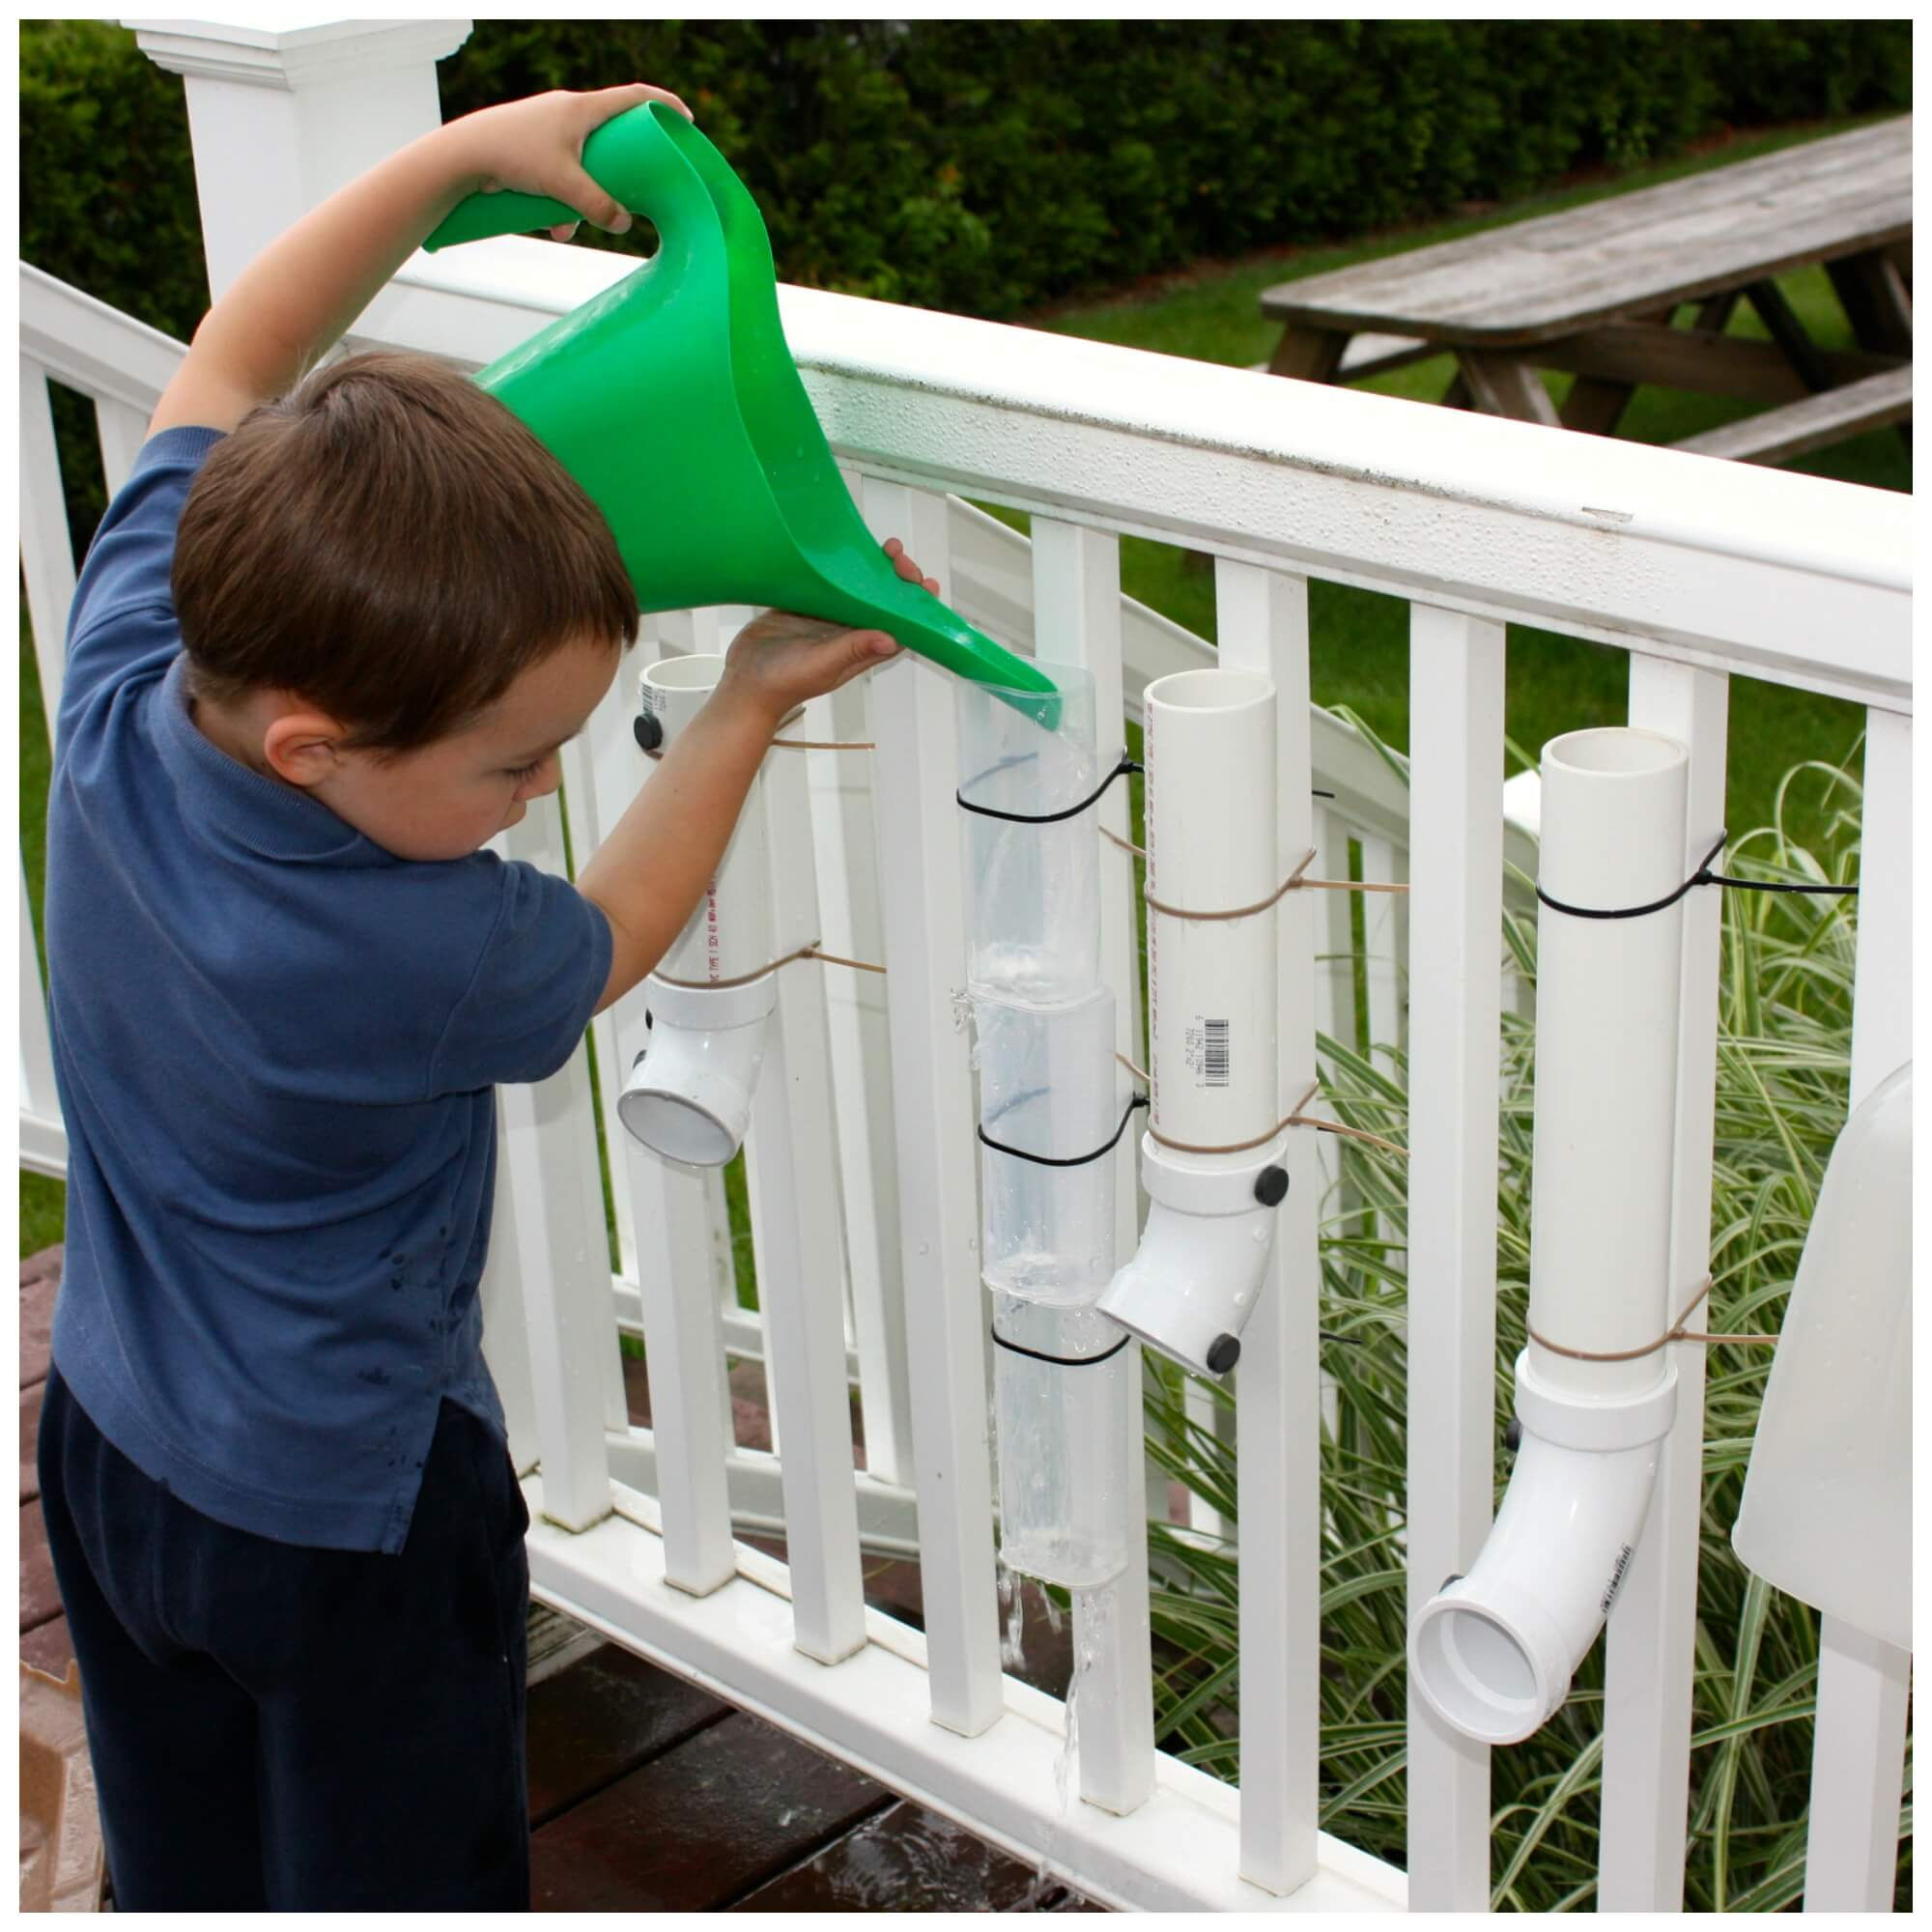 Water and ice activities summer camp at home with 12 weeks of easy - Backyard Simple Water Wall